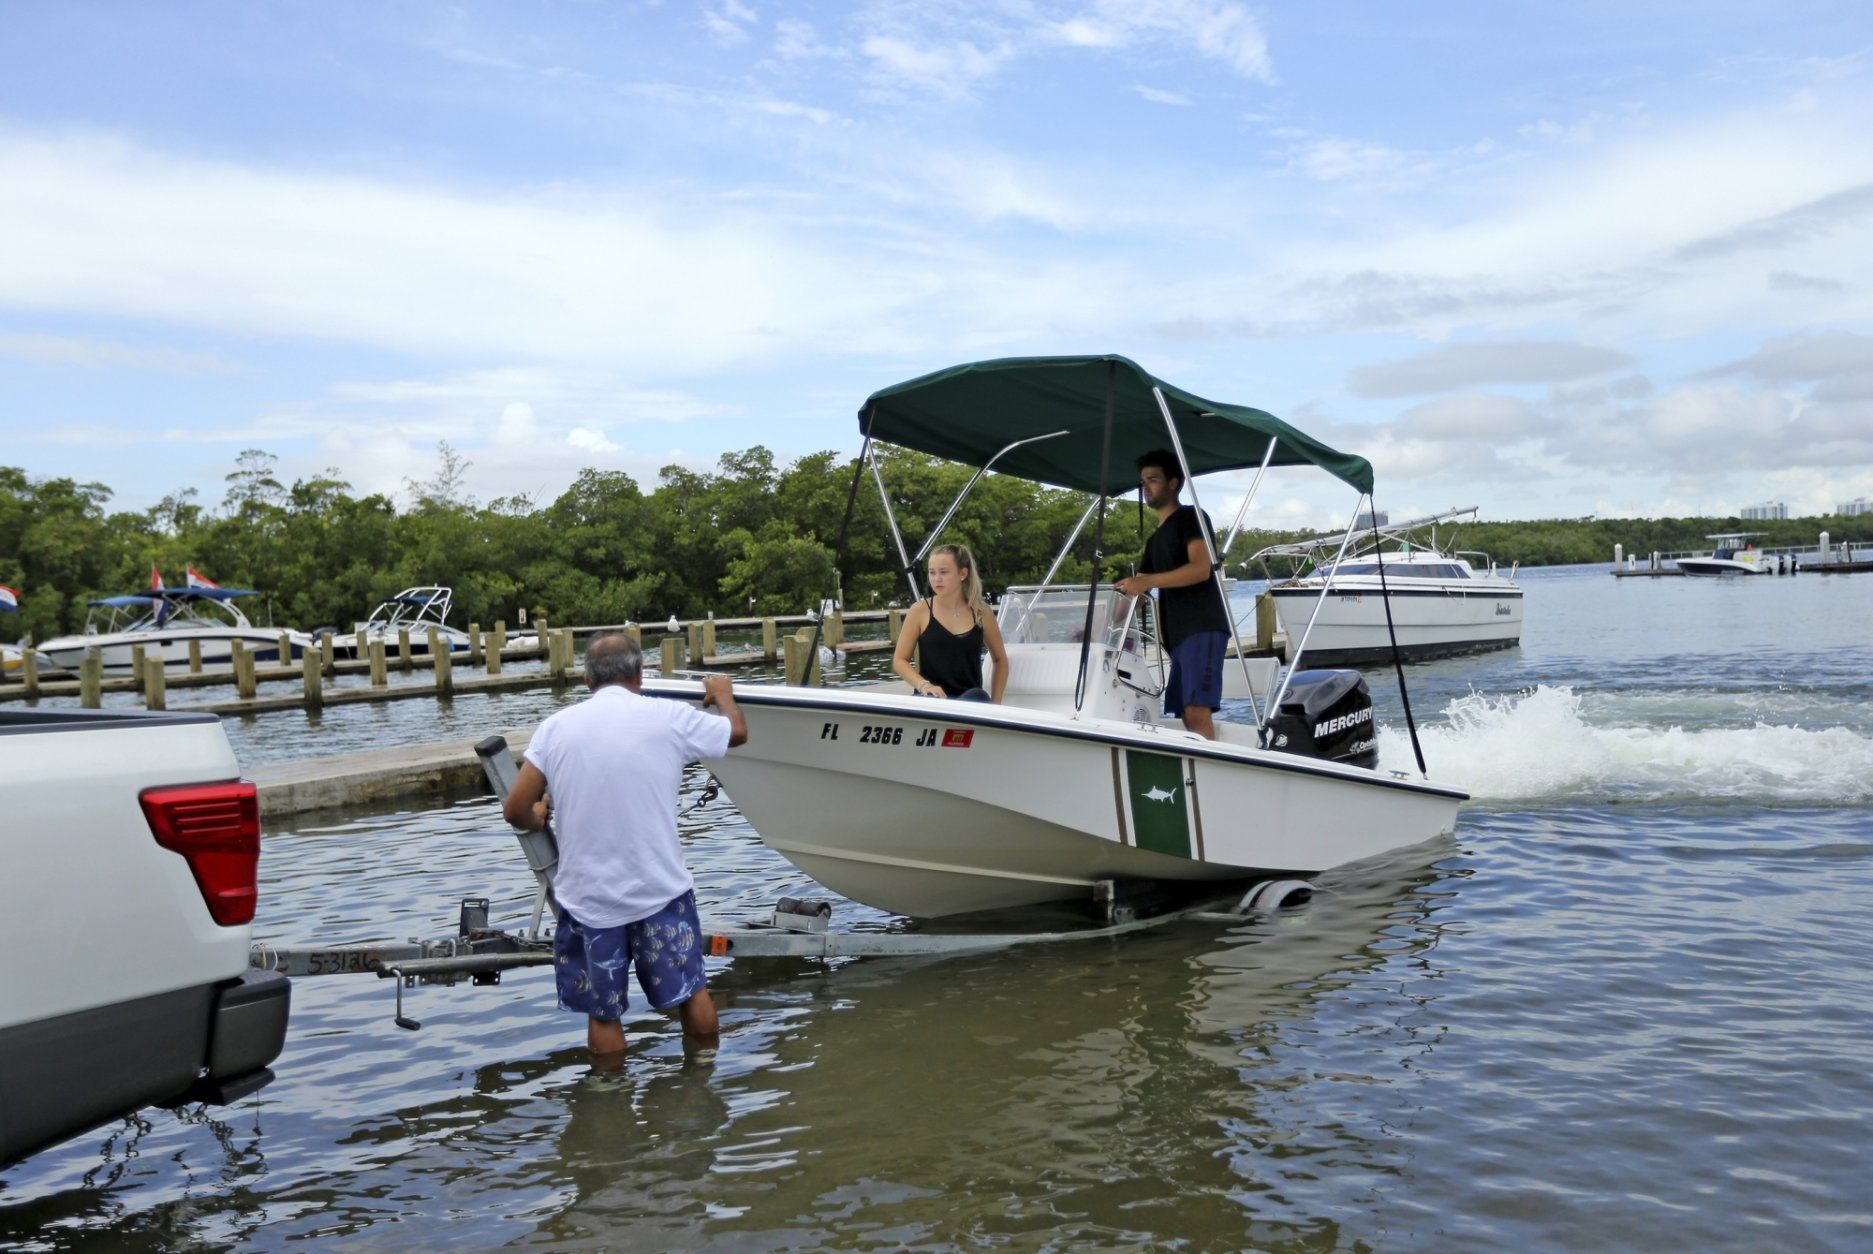 Renan Fuentes, left, Kevin Fuentes, right, and his girlfriend Alexia Mikhalides pull out his boat from the Haulover Marine Center, Friday, Aug. 30, 2019 in Miami Beach, Fla. Hurricane Dorian was muscling a chaotic path toward Florida, with officials and residents bracing for the possibility it would unleash its full fury early next week but clinging to the glimmer of hope that the strengthening storm could simply skirt the coastline. (David Santiago/Miami Herald via AP)